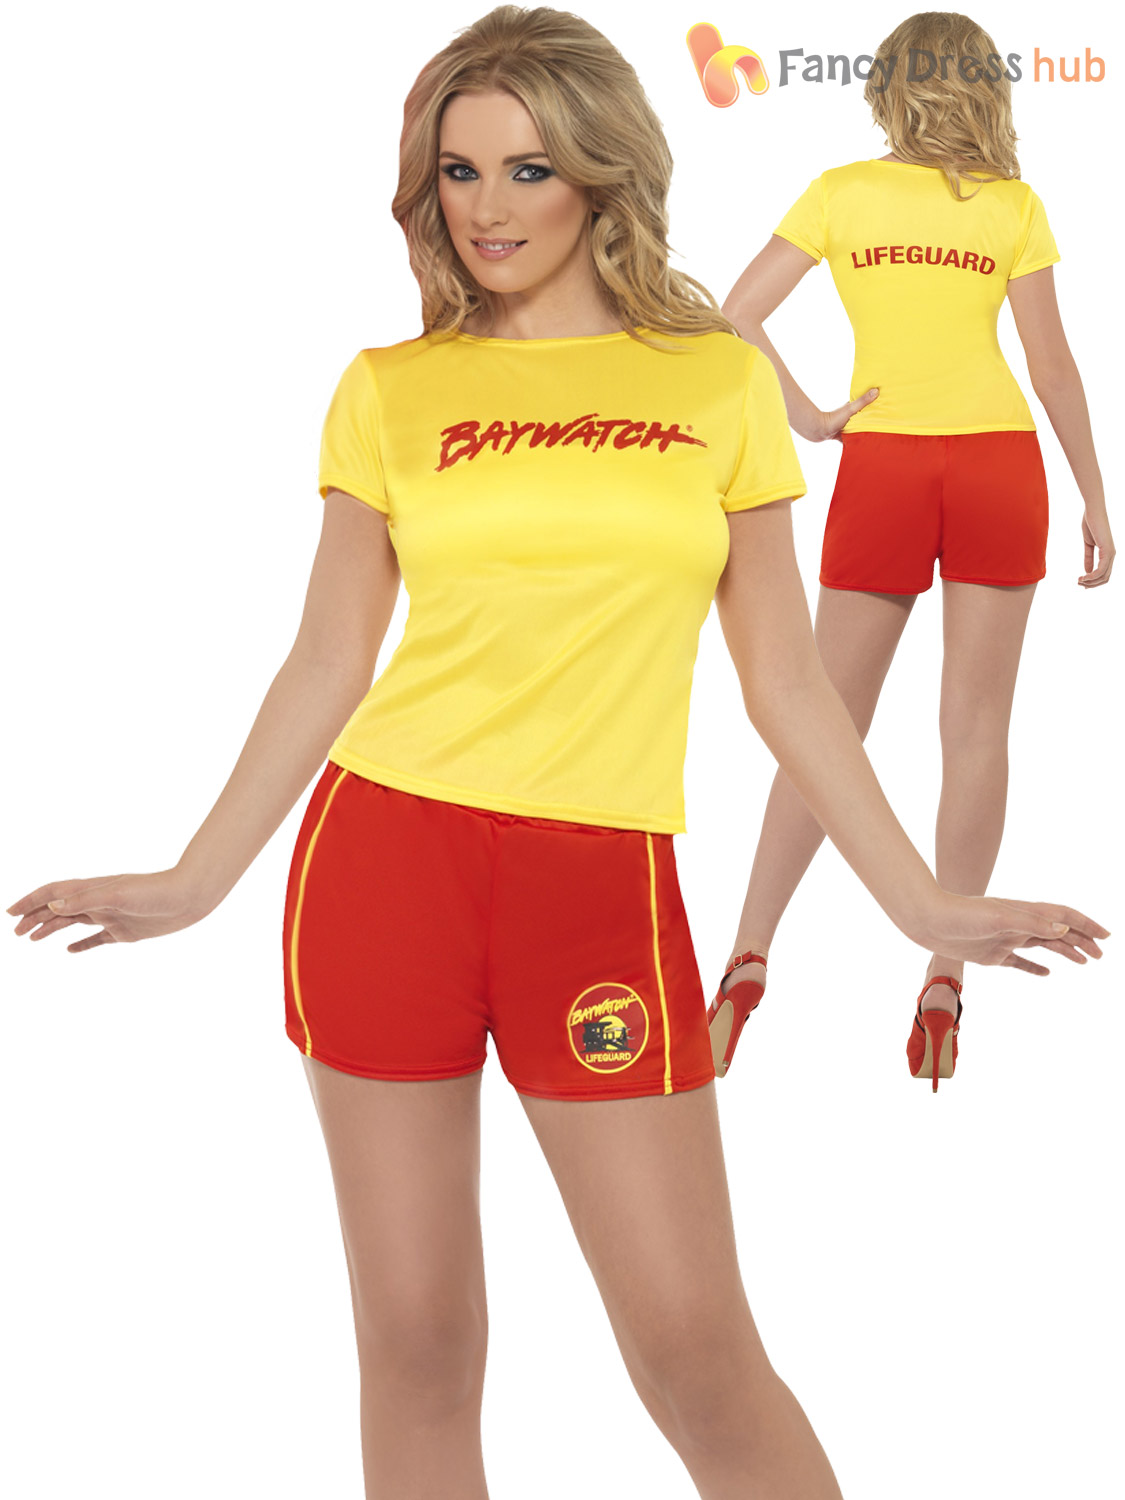 091dfef8bbe0 Ladies Baywatch Fancy Dress Beach Lifeguard Sexy Swimsuit Hen Party ...